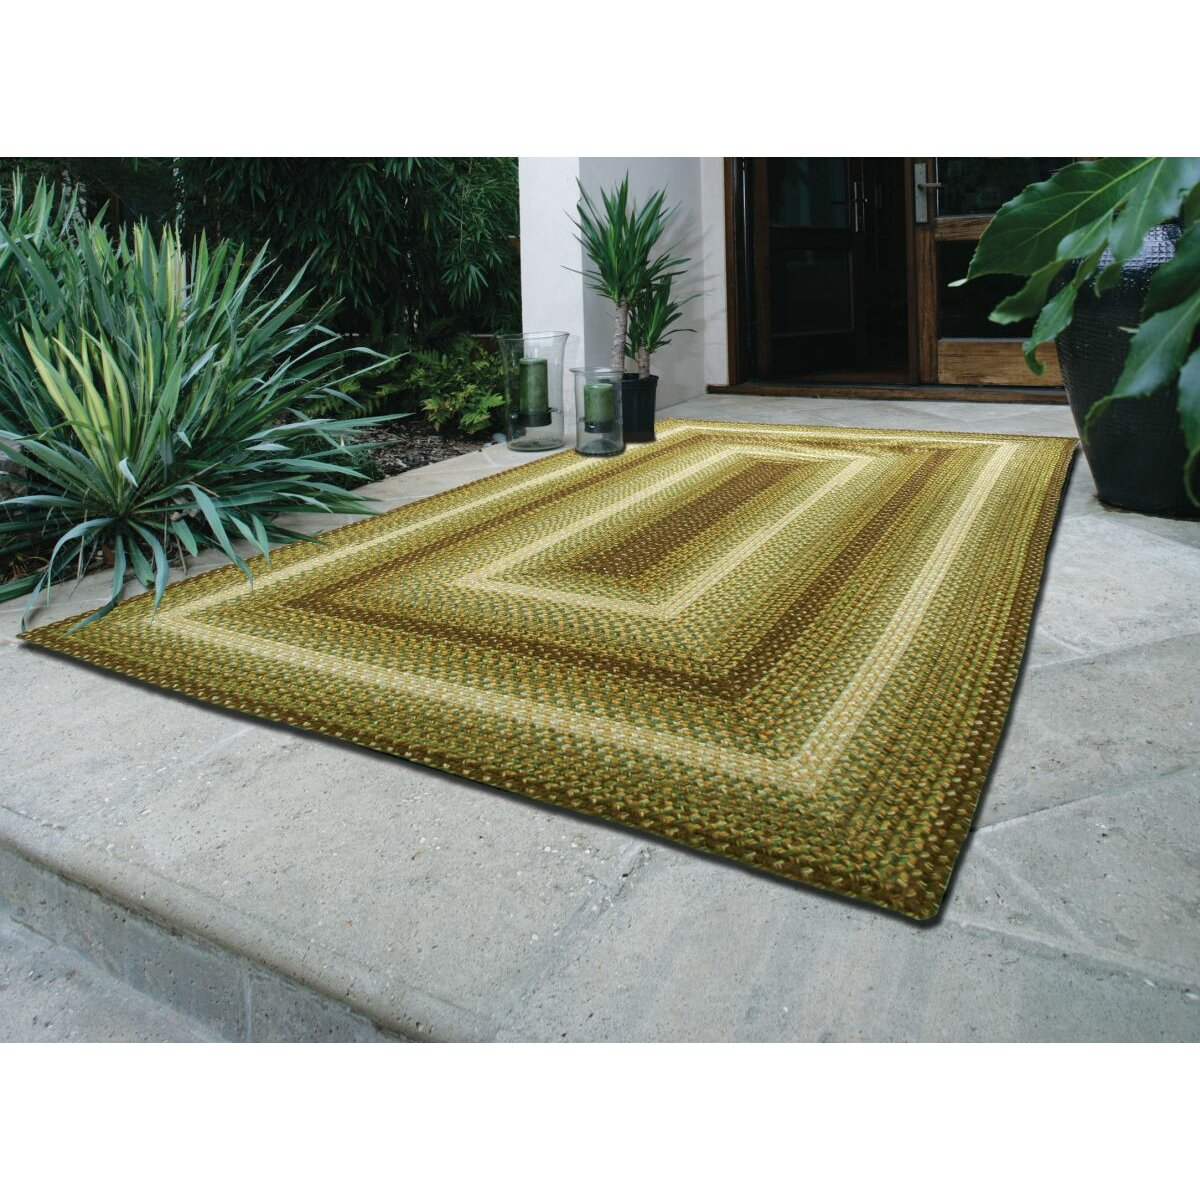 Garden Decor Nutty Rug: Country Walk Green Indoor/Outdoor Rug